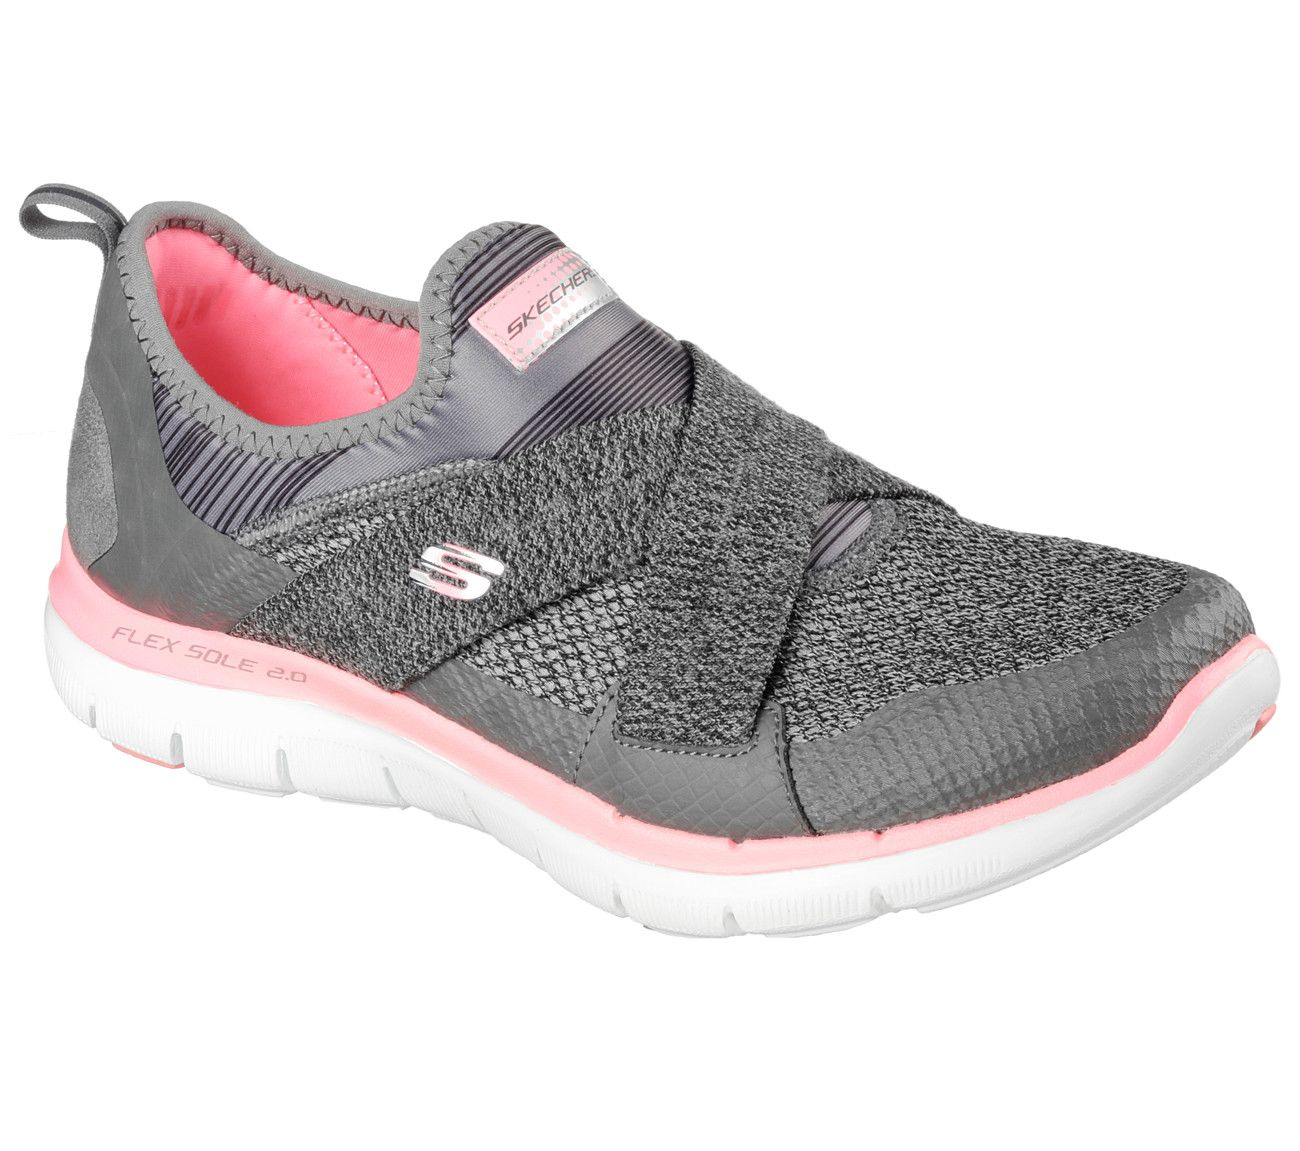 23a1ccb90009b SKECHERS- FLEX APPEAL 2.0 - NEW IMAGE